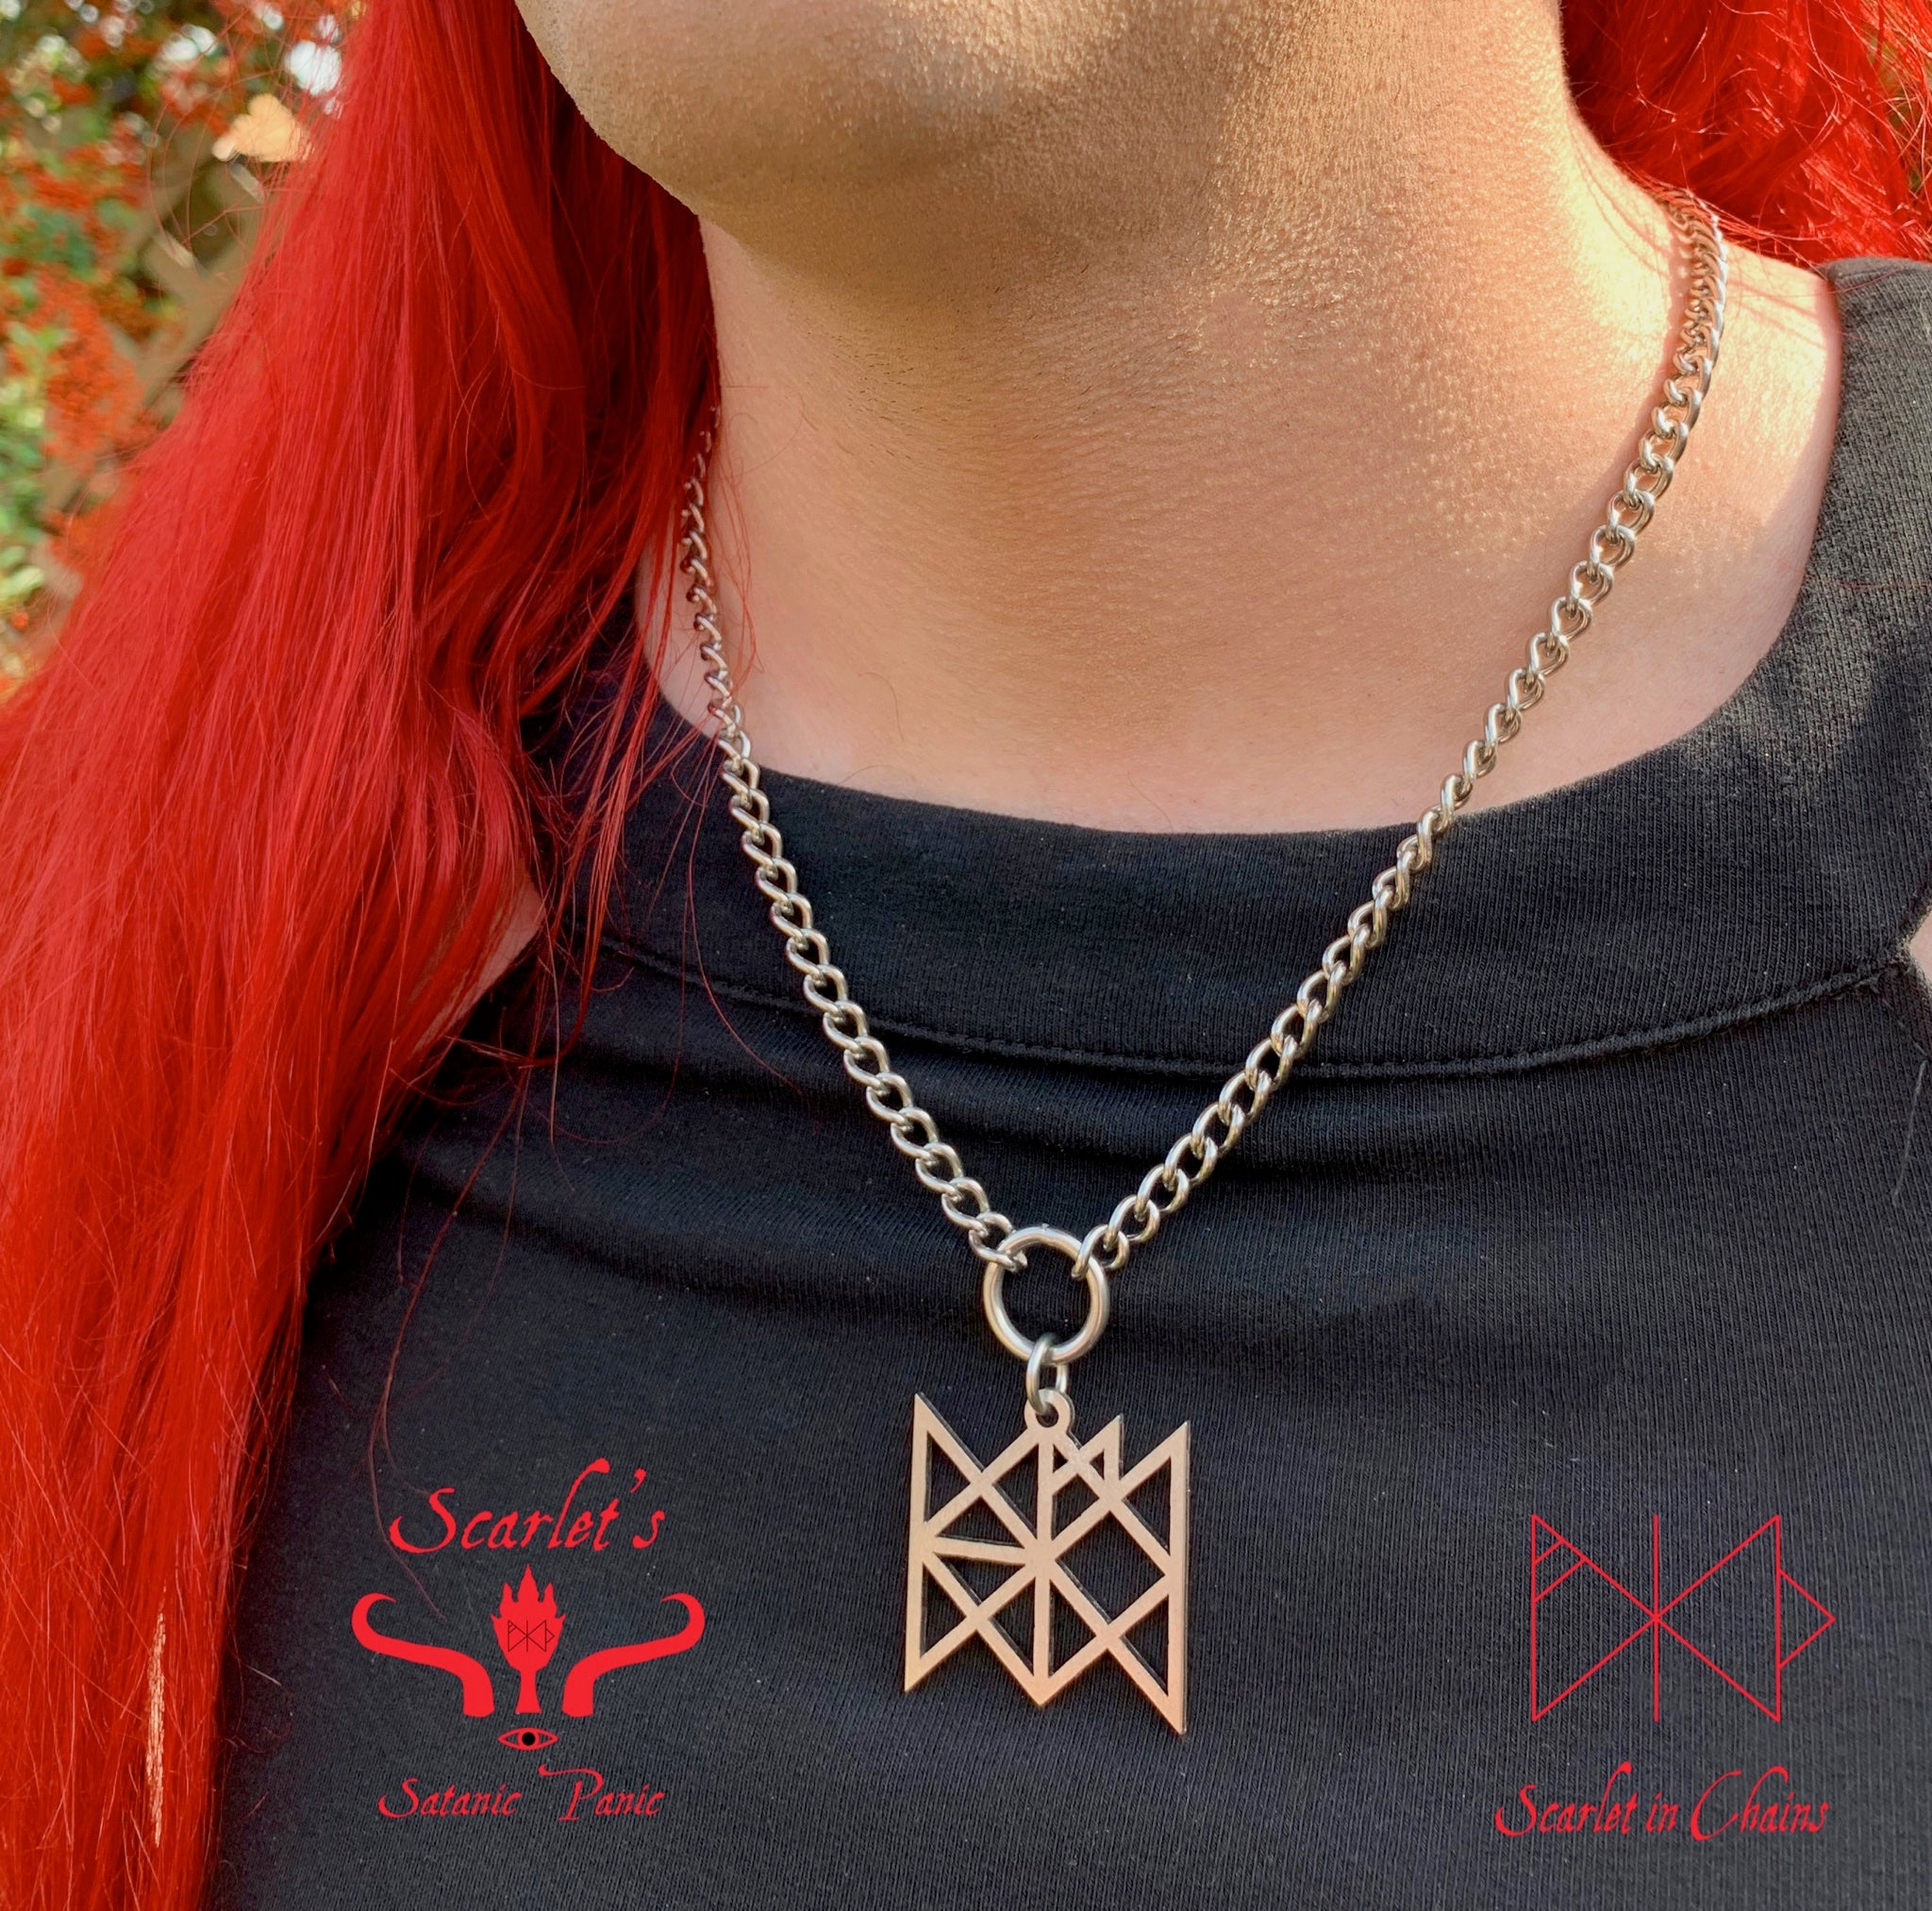 316 Stainless Steel Bind Rune Necklace Laser Cut, Laser Etched and had finished custom made to size shown close